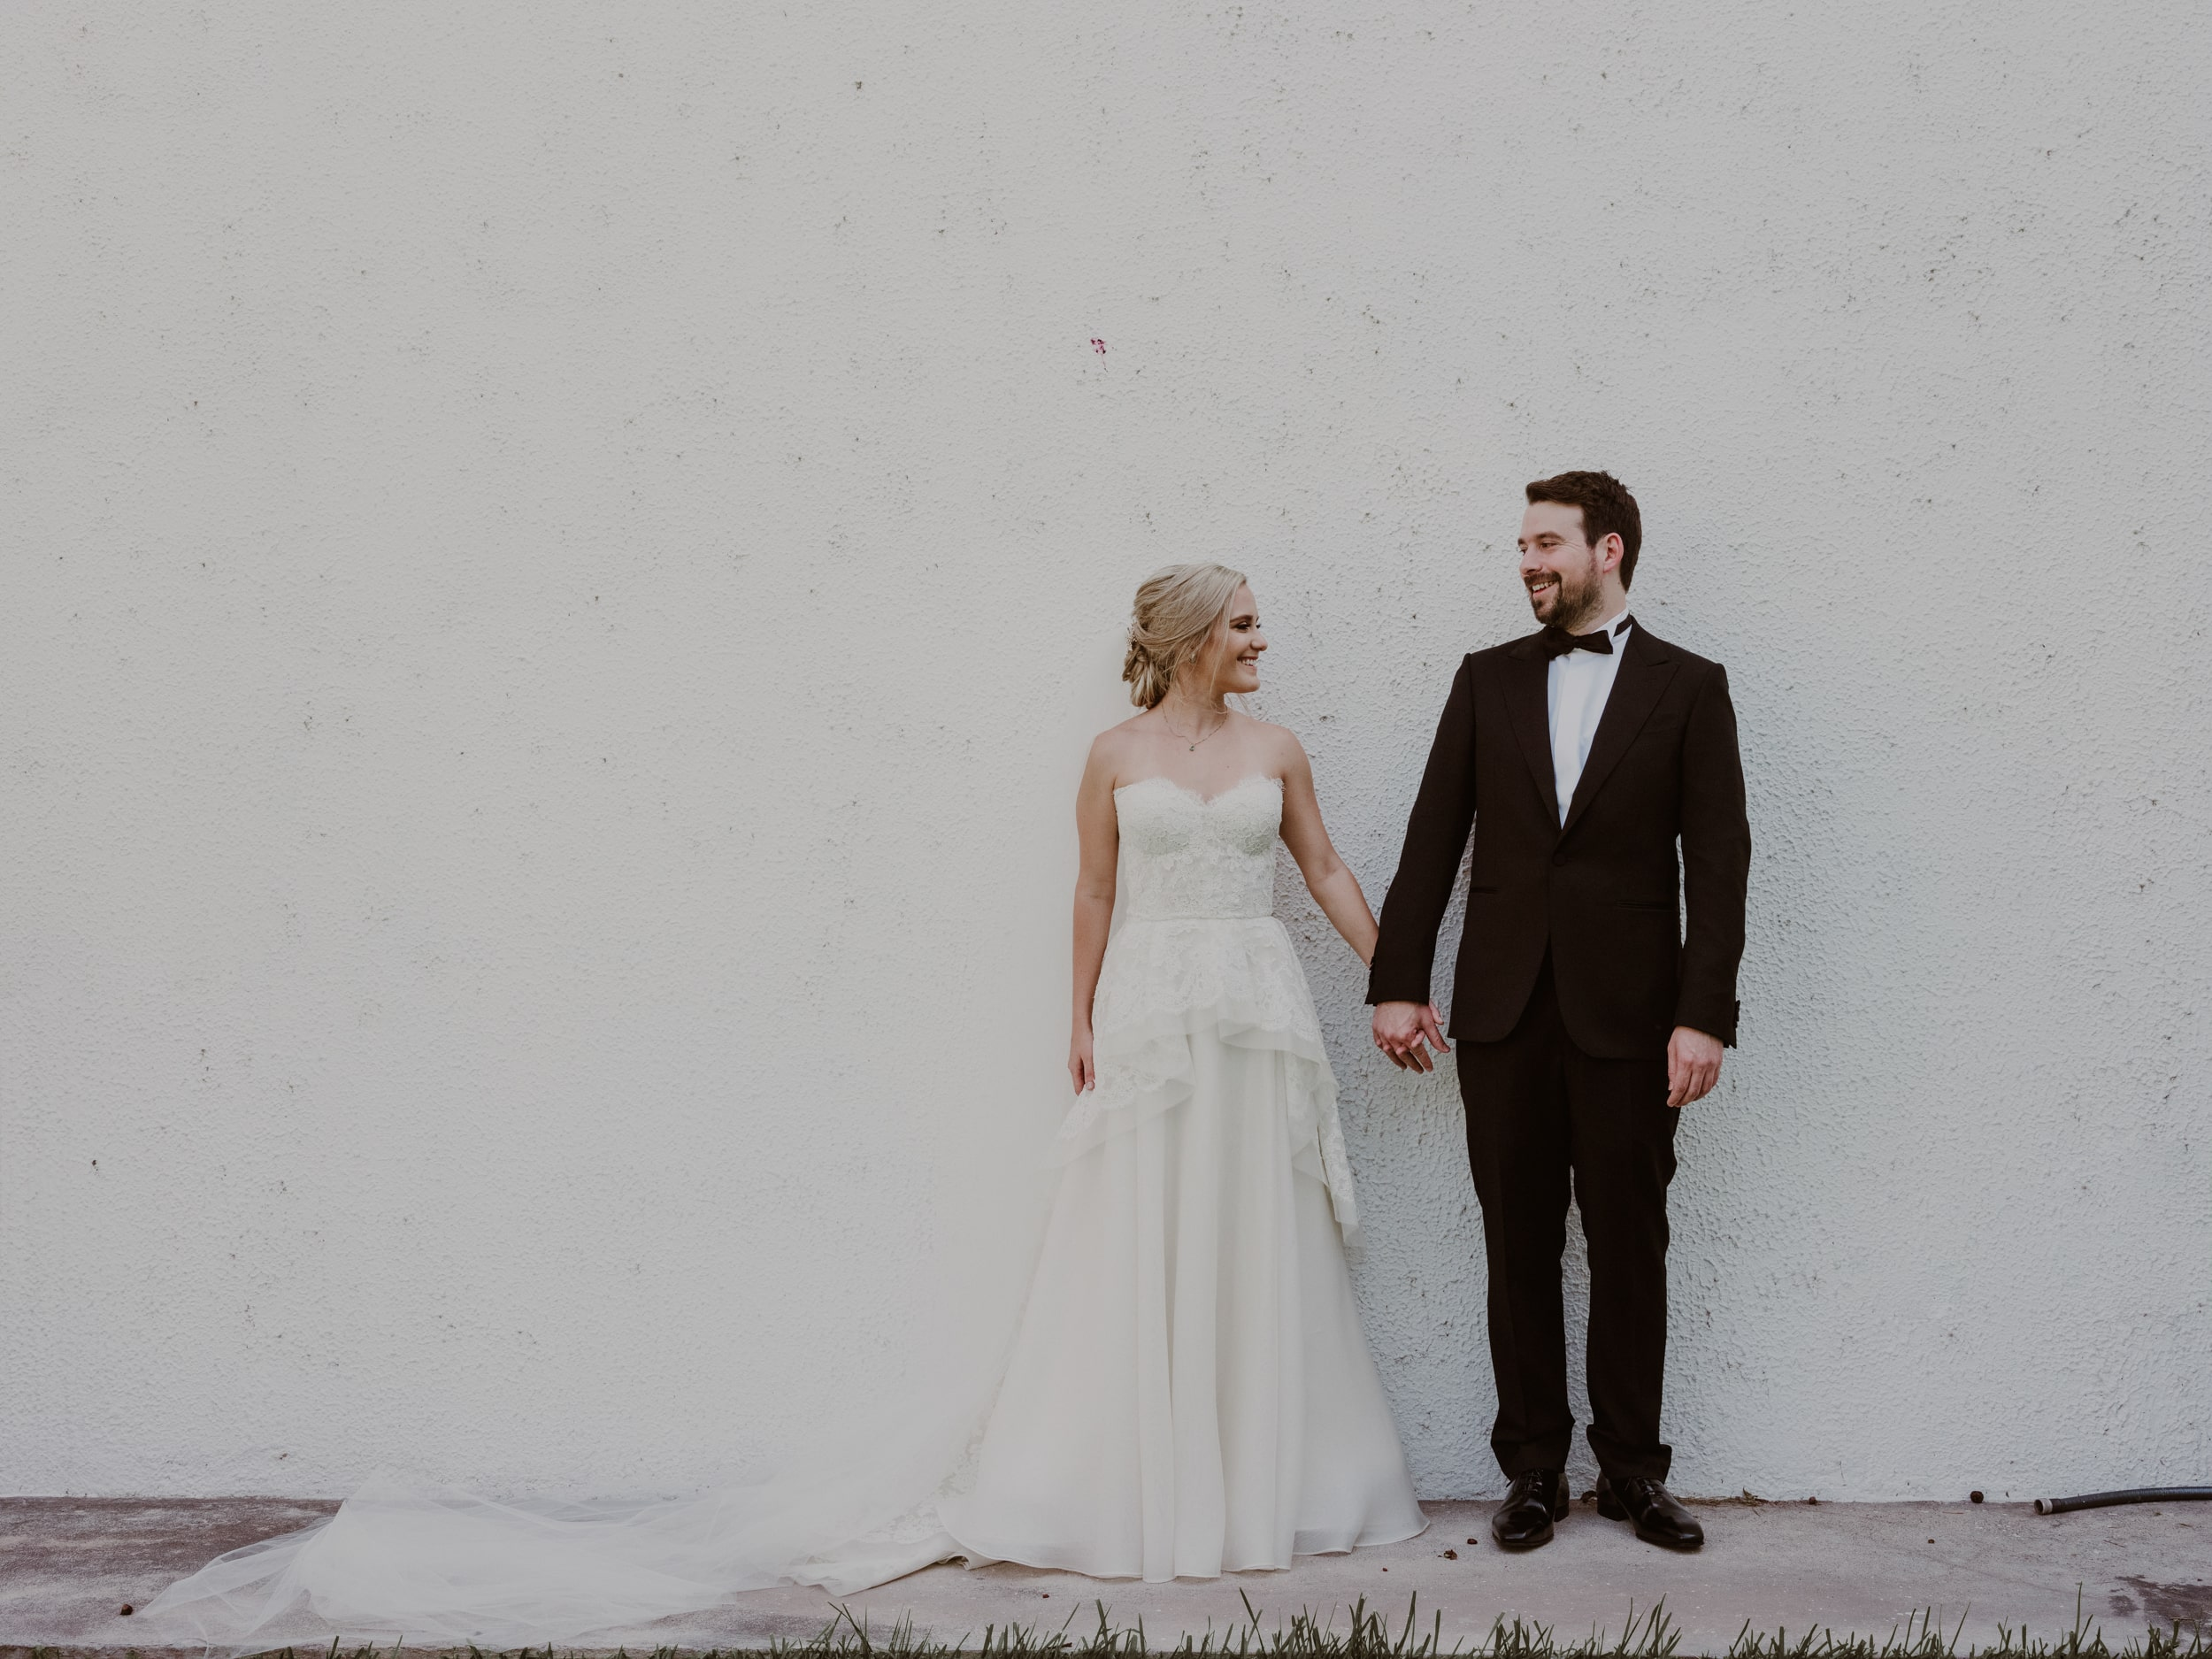 Carla & Javier's Classy, Intimate Micro-wedding During Covid-19, Photography by Daniela Villarreal for Luxury Destination Wedding network Adriana Weddings